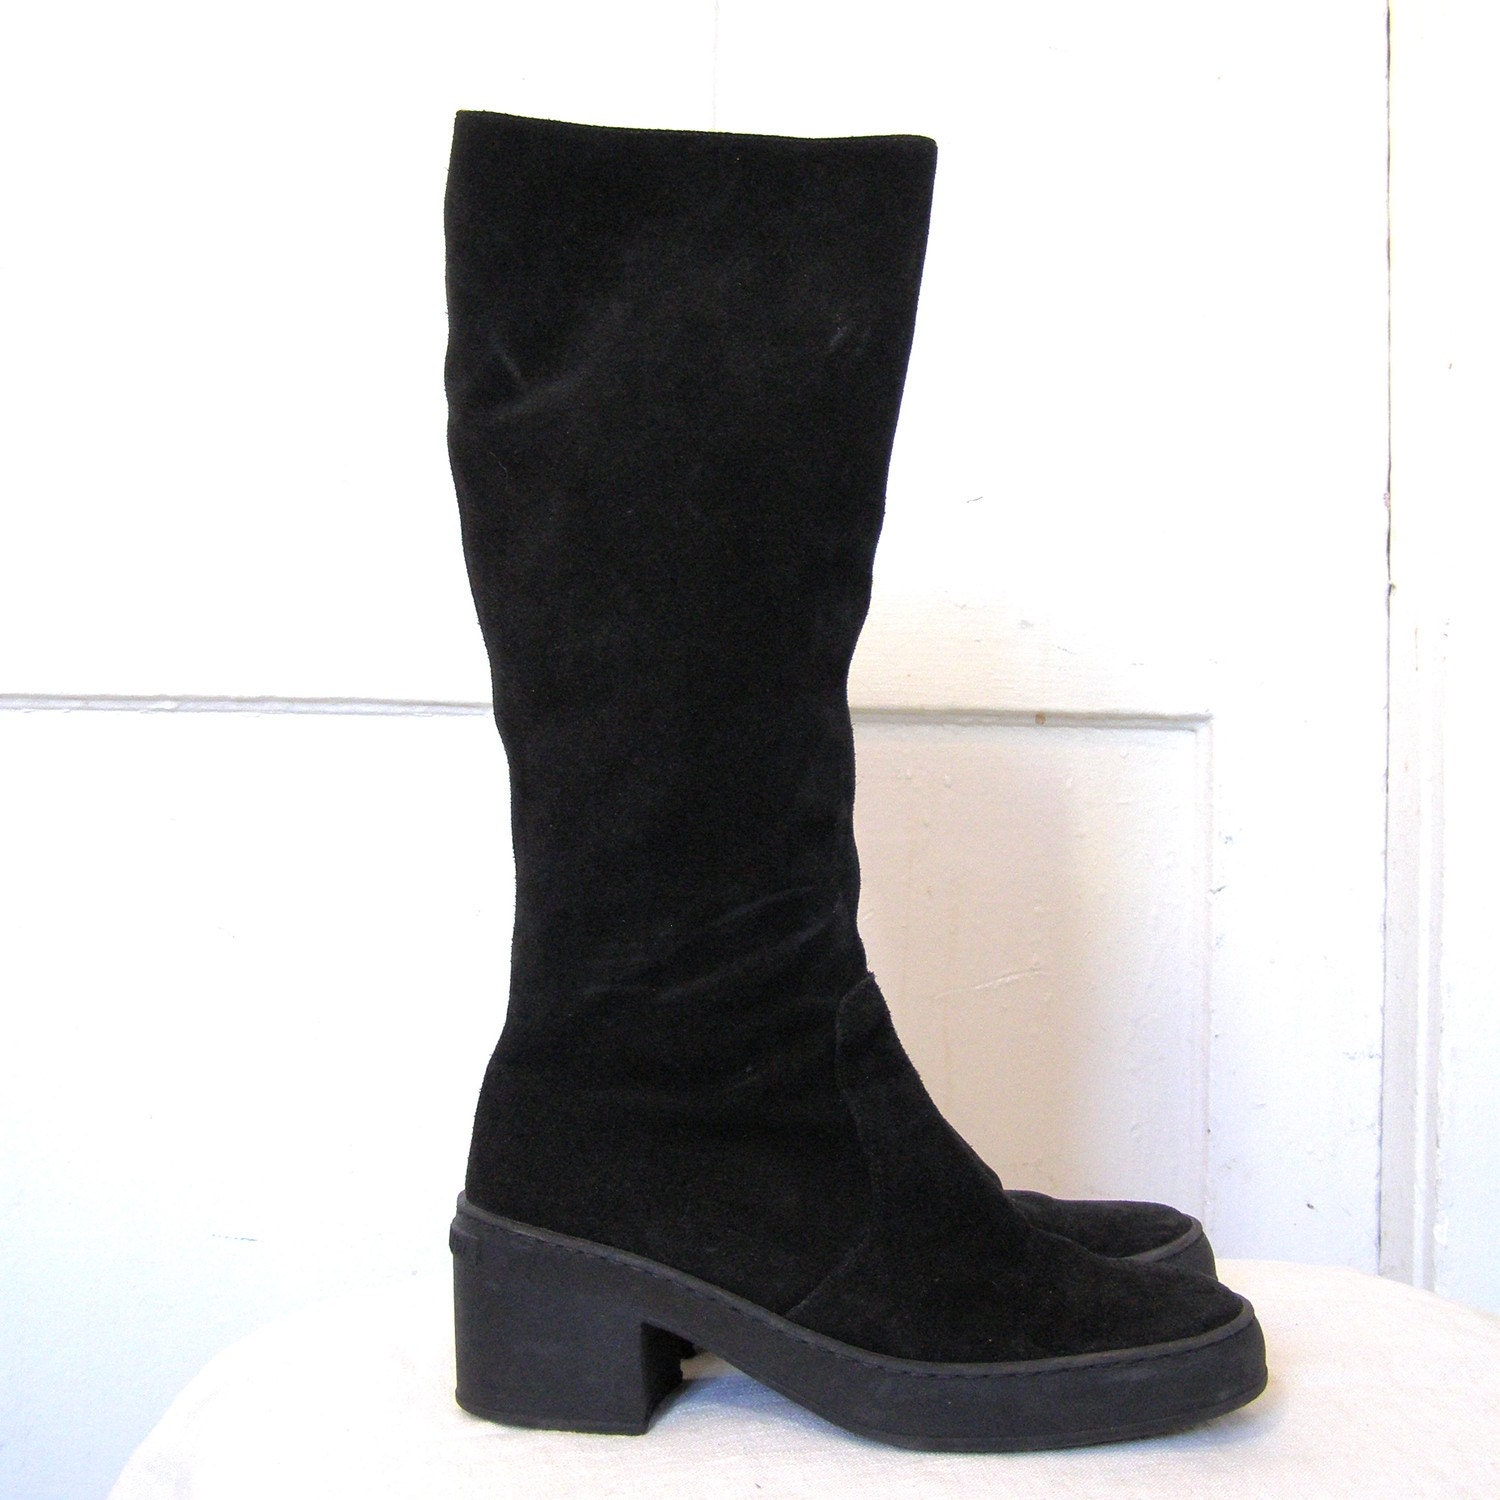 black suede boots by joan and david size 8 5 made in italy